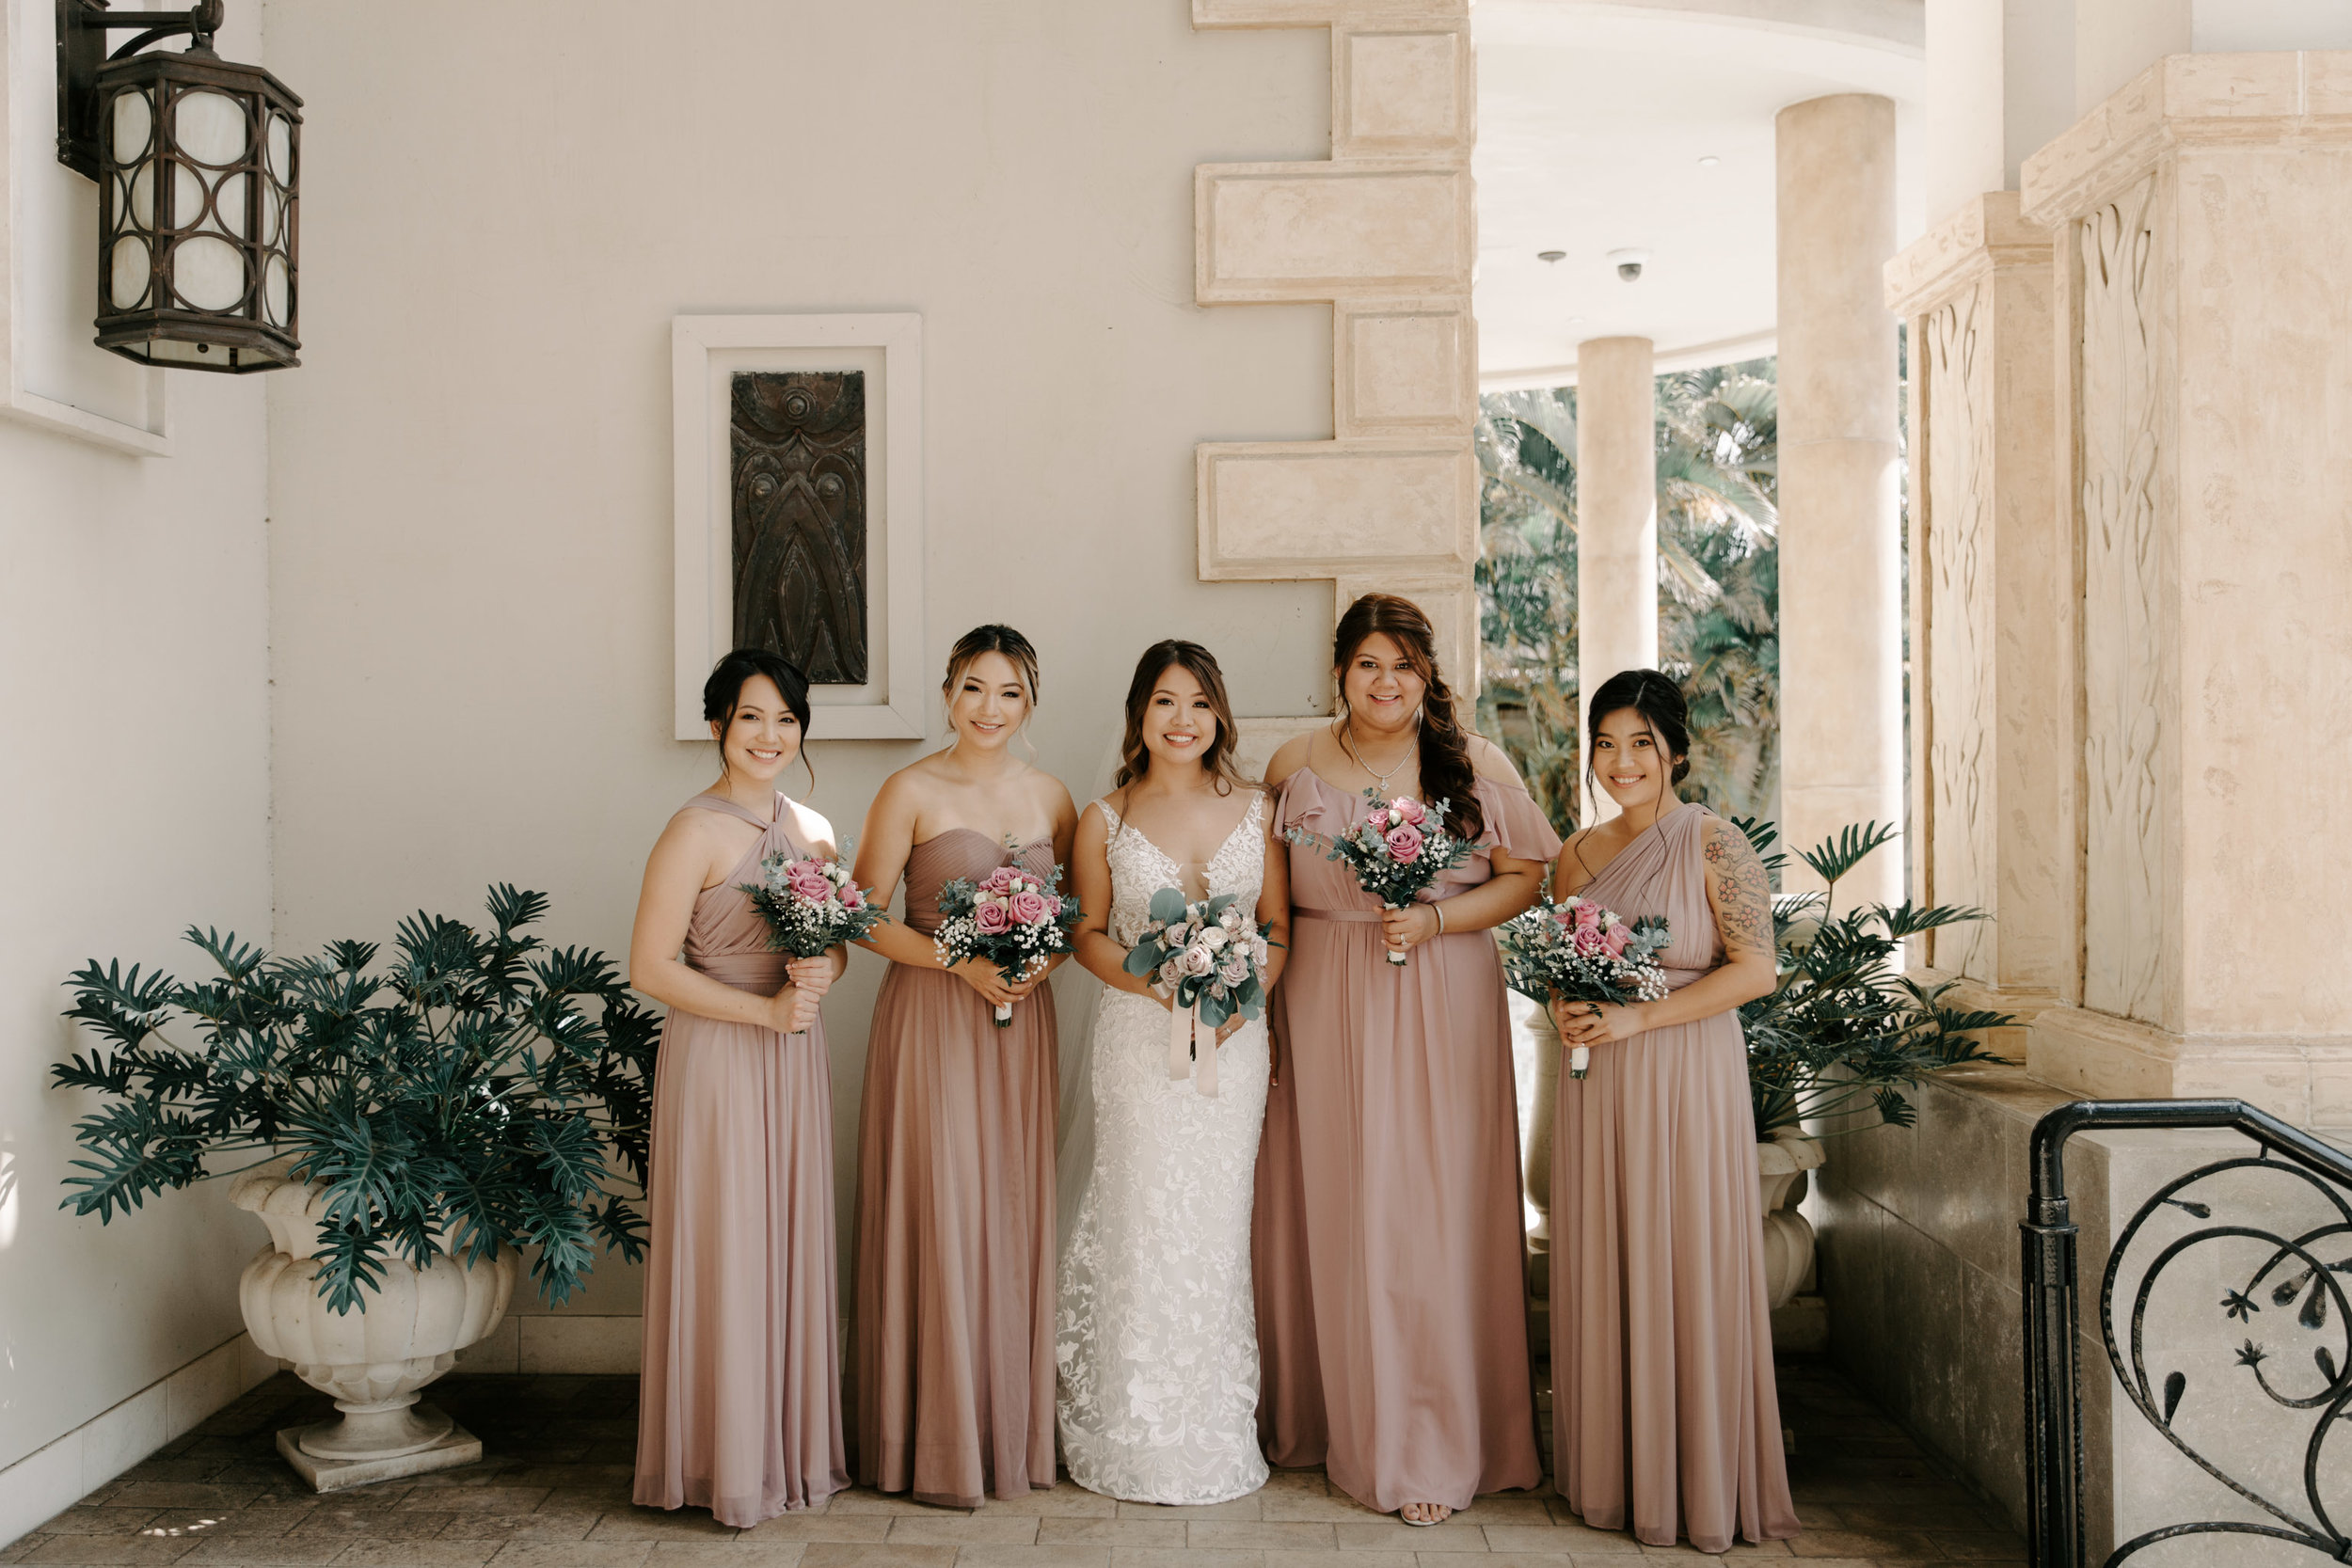 Blush Bridesmaid Dresses - 53 By The Sea Hawaii Wedding Naupaka Chapel By Oahu Wedding Photographer Desiree Leilani